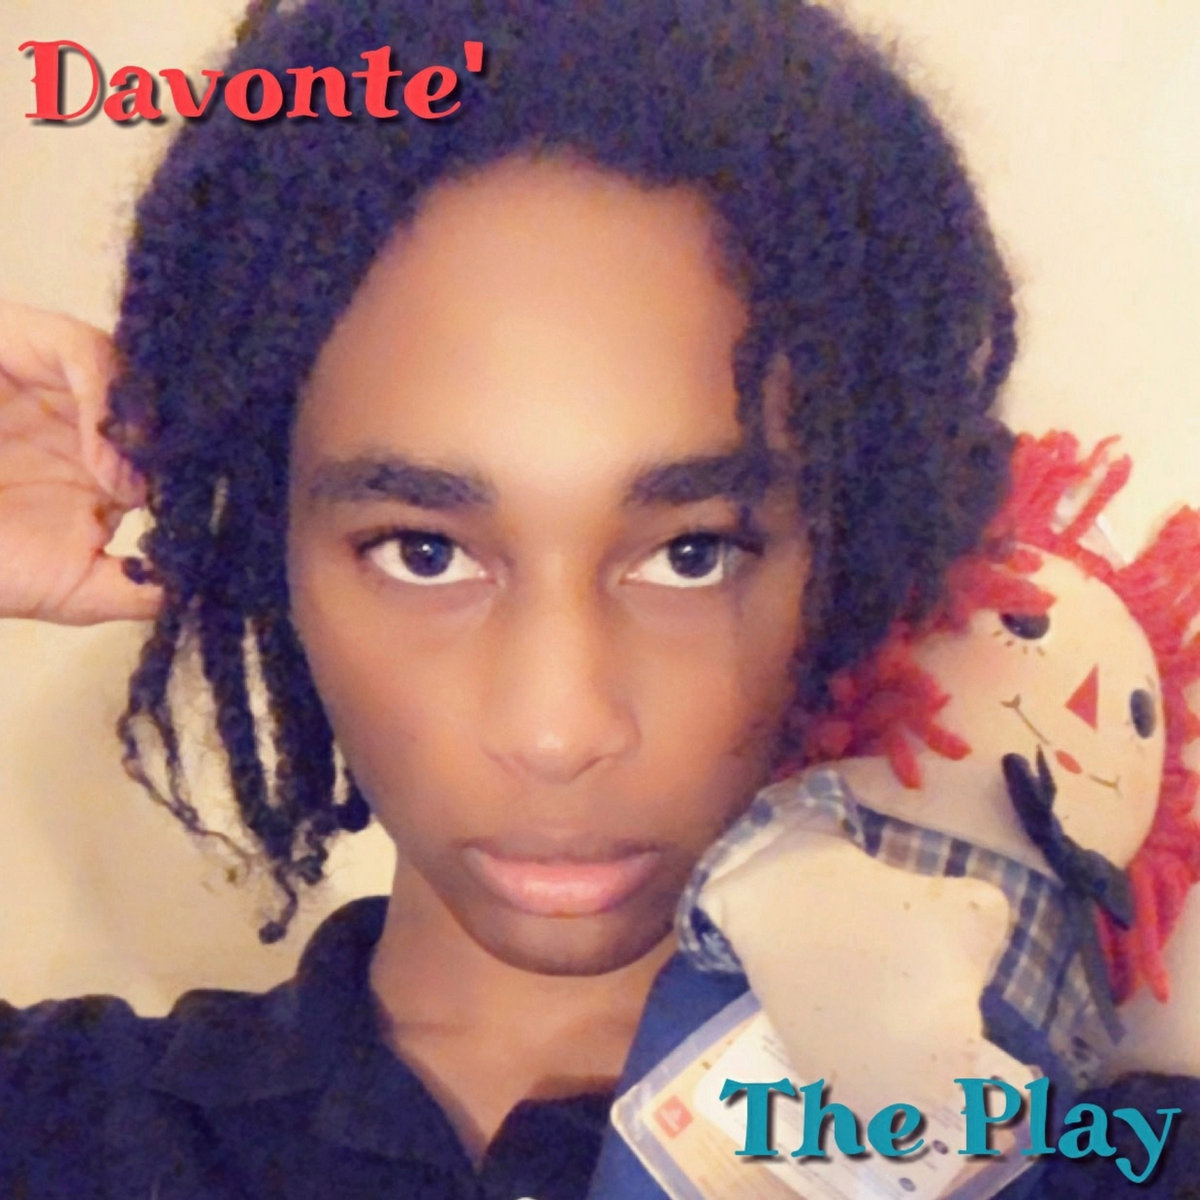 The Play by Davonte'